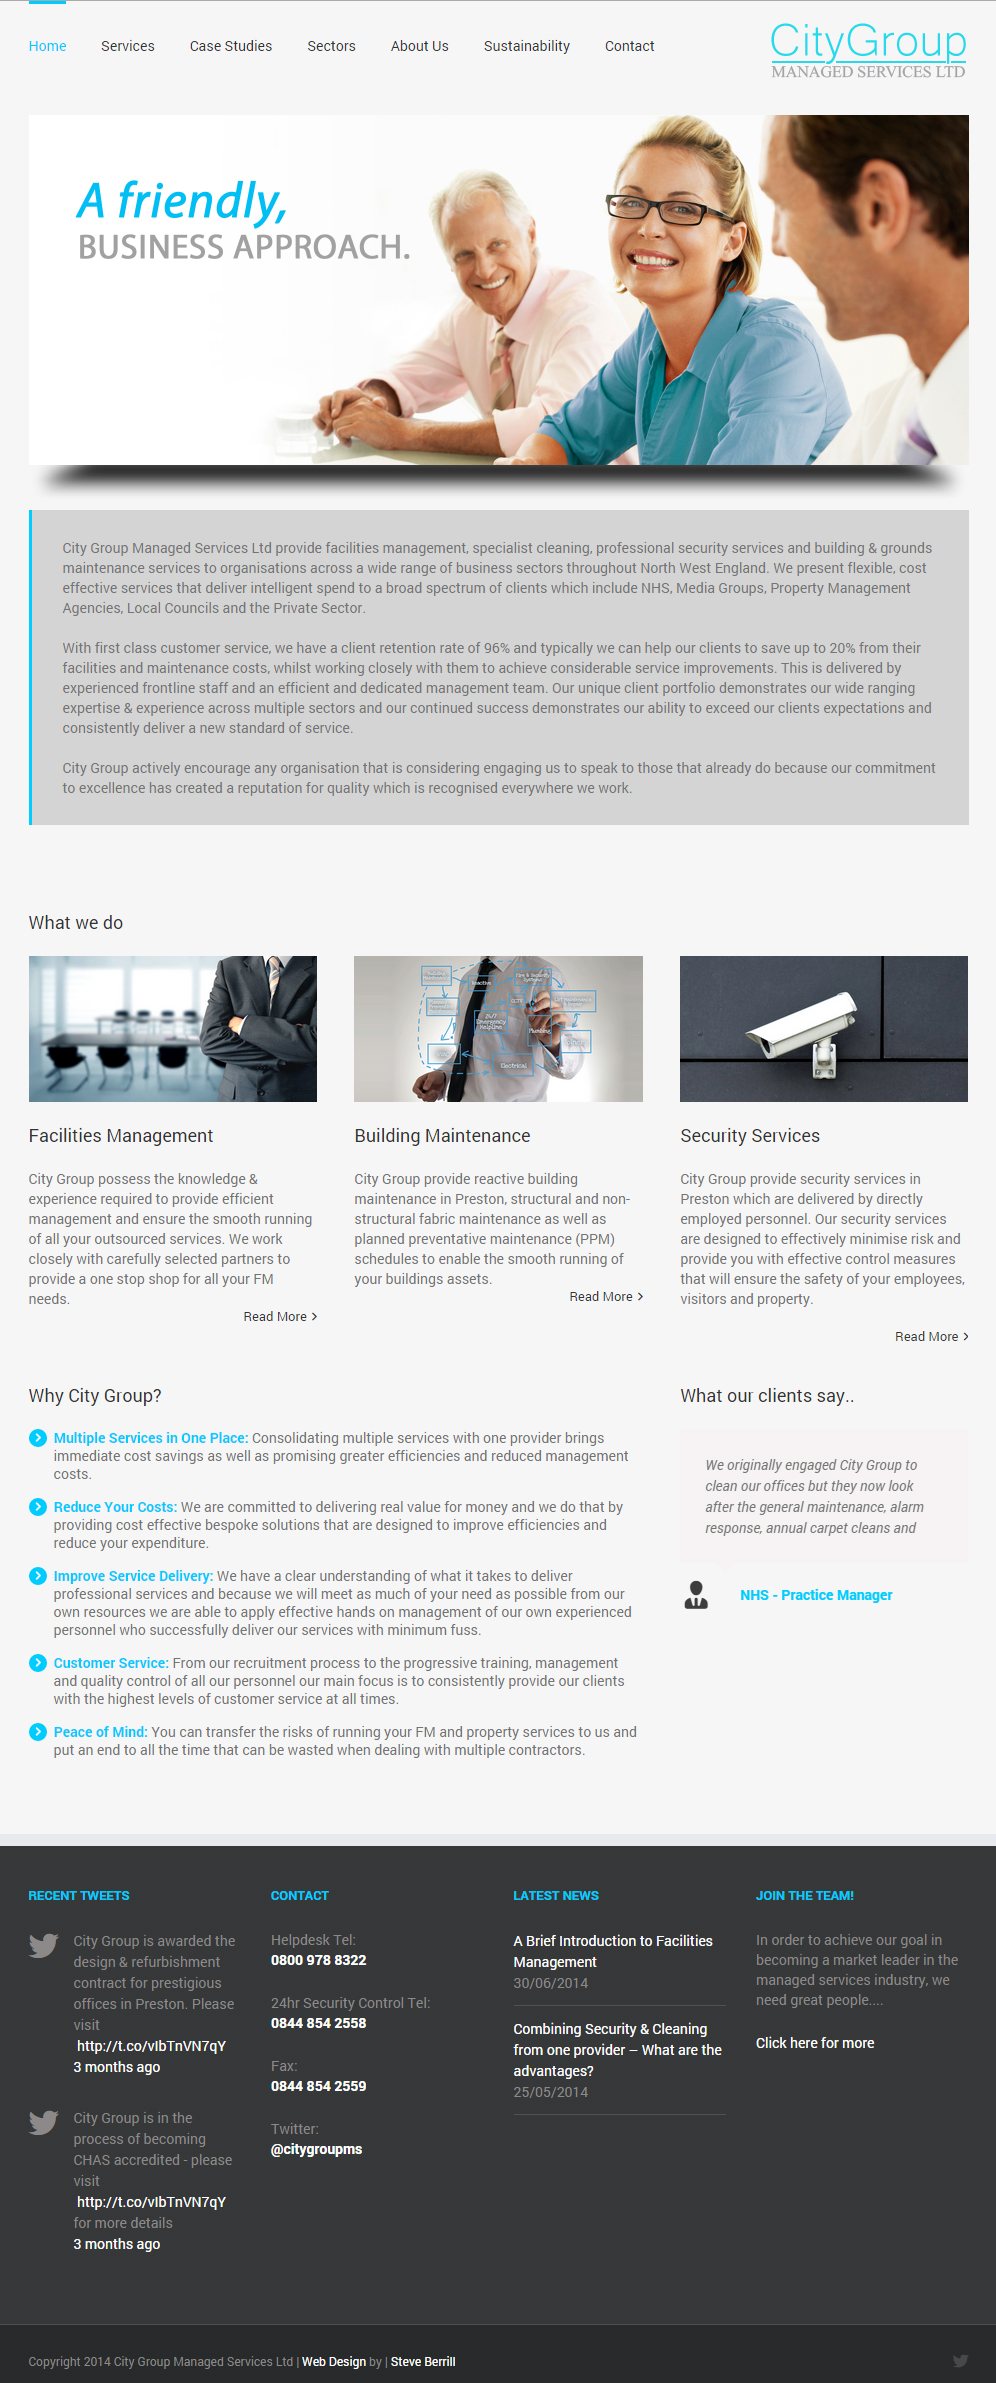 Wordpress website designed and developed.